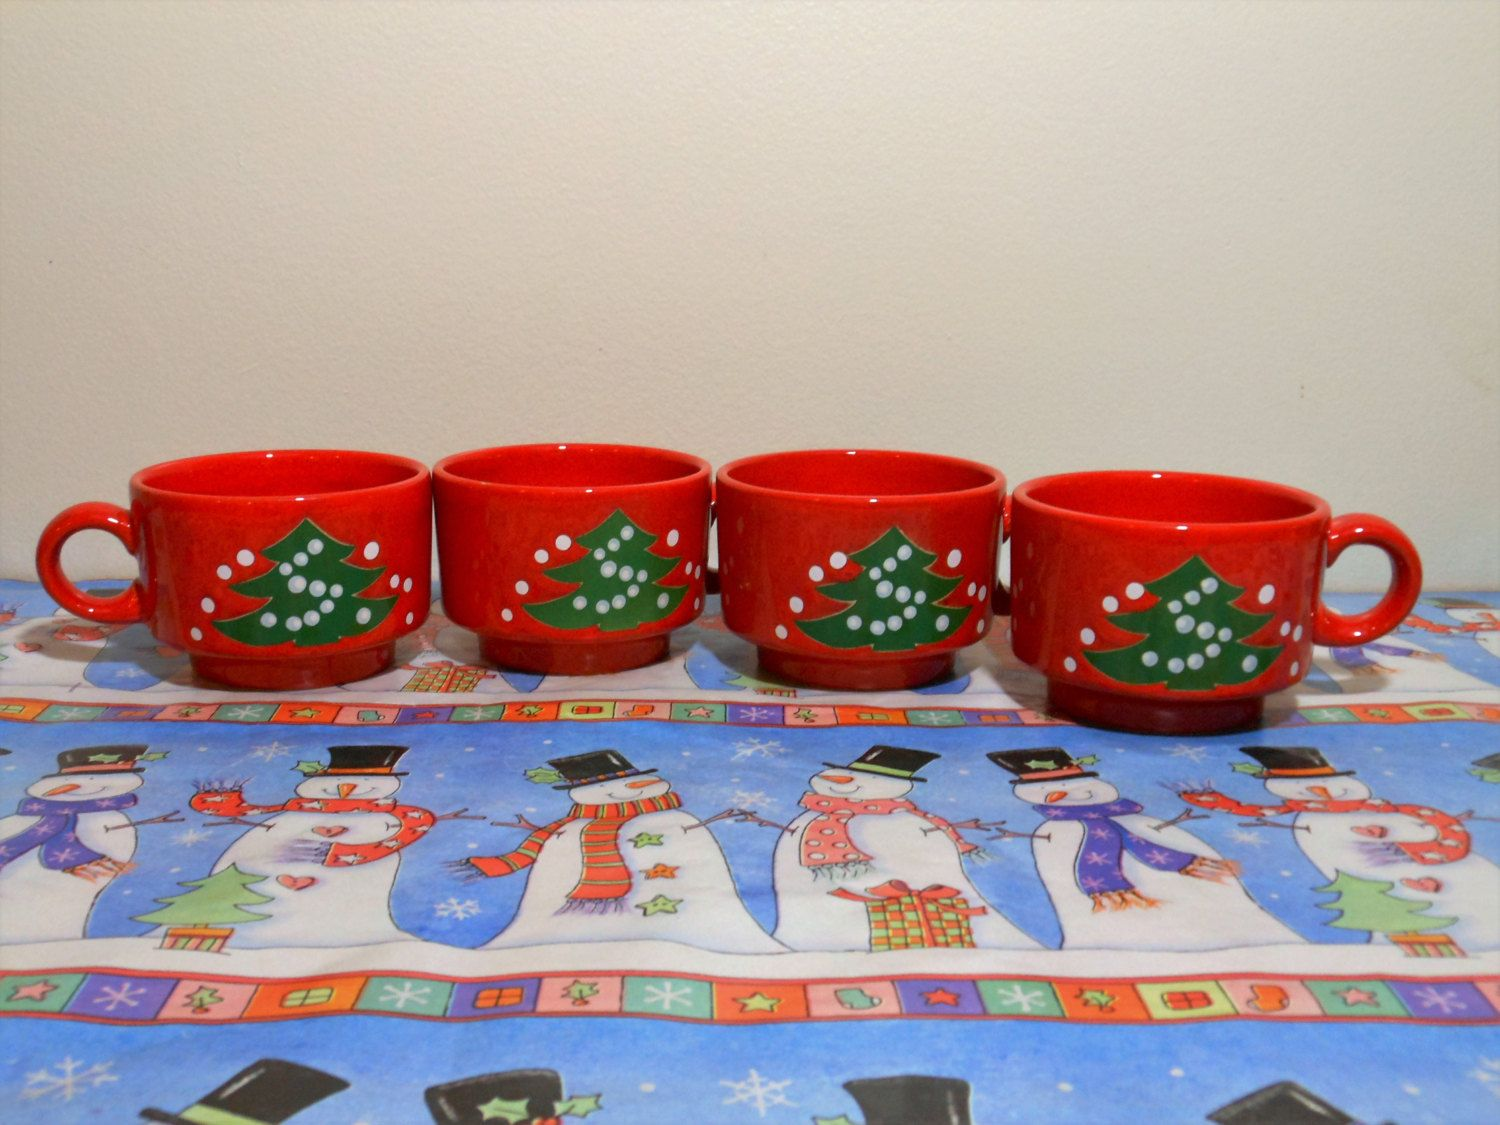 4 Small Waechtersbach Christmas Cups Waechtersbach Christmas Mugs Red Christmas Tree Mugs Christmas & 4 Small Waechtersbach Christmas Tree Cups Waechtersbach Christmas ...